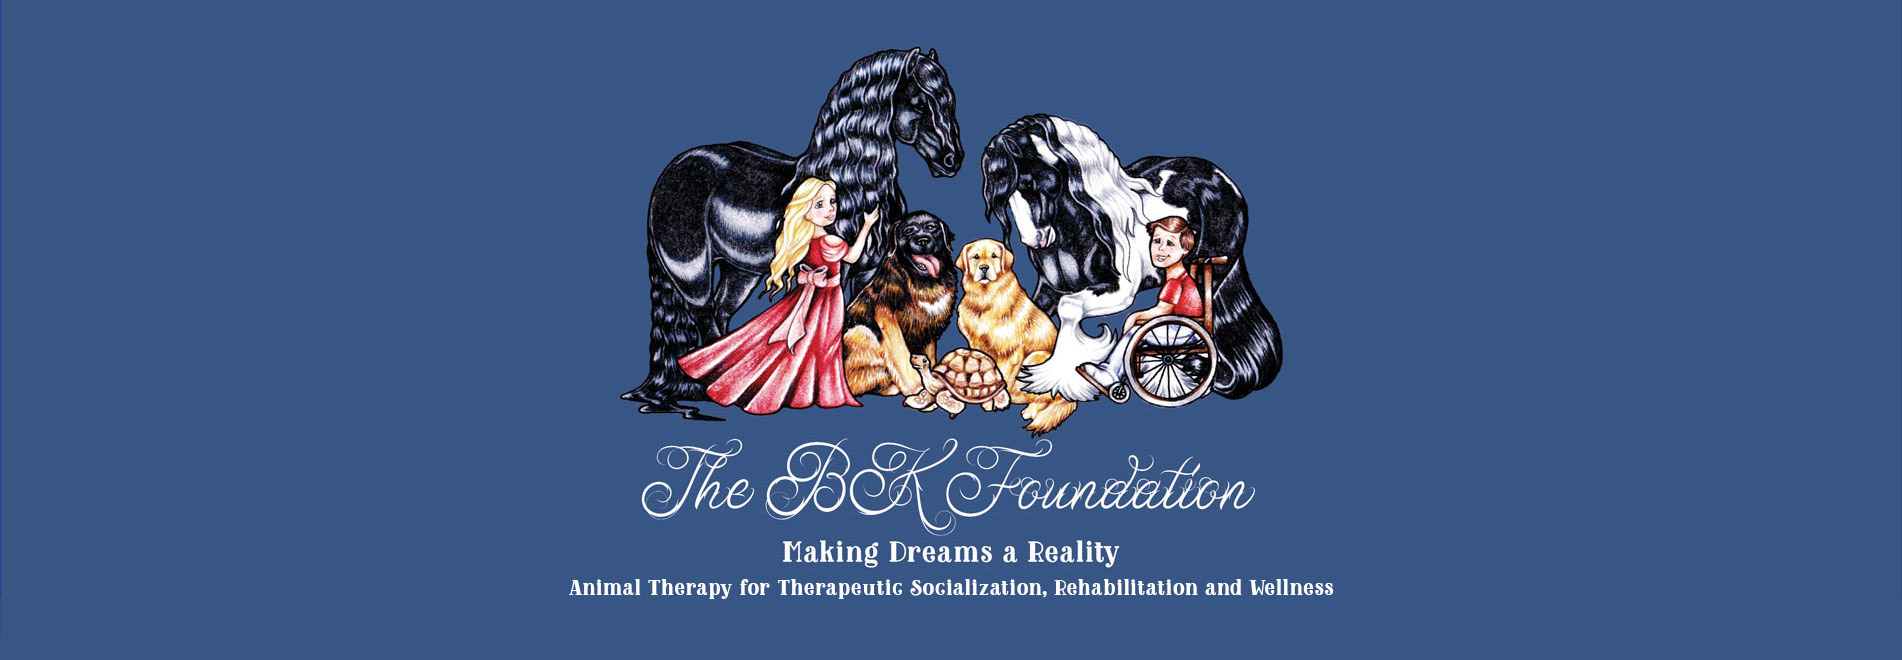 BK Foundation Banner